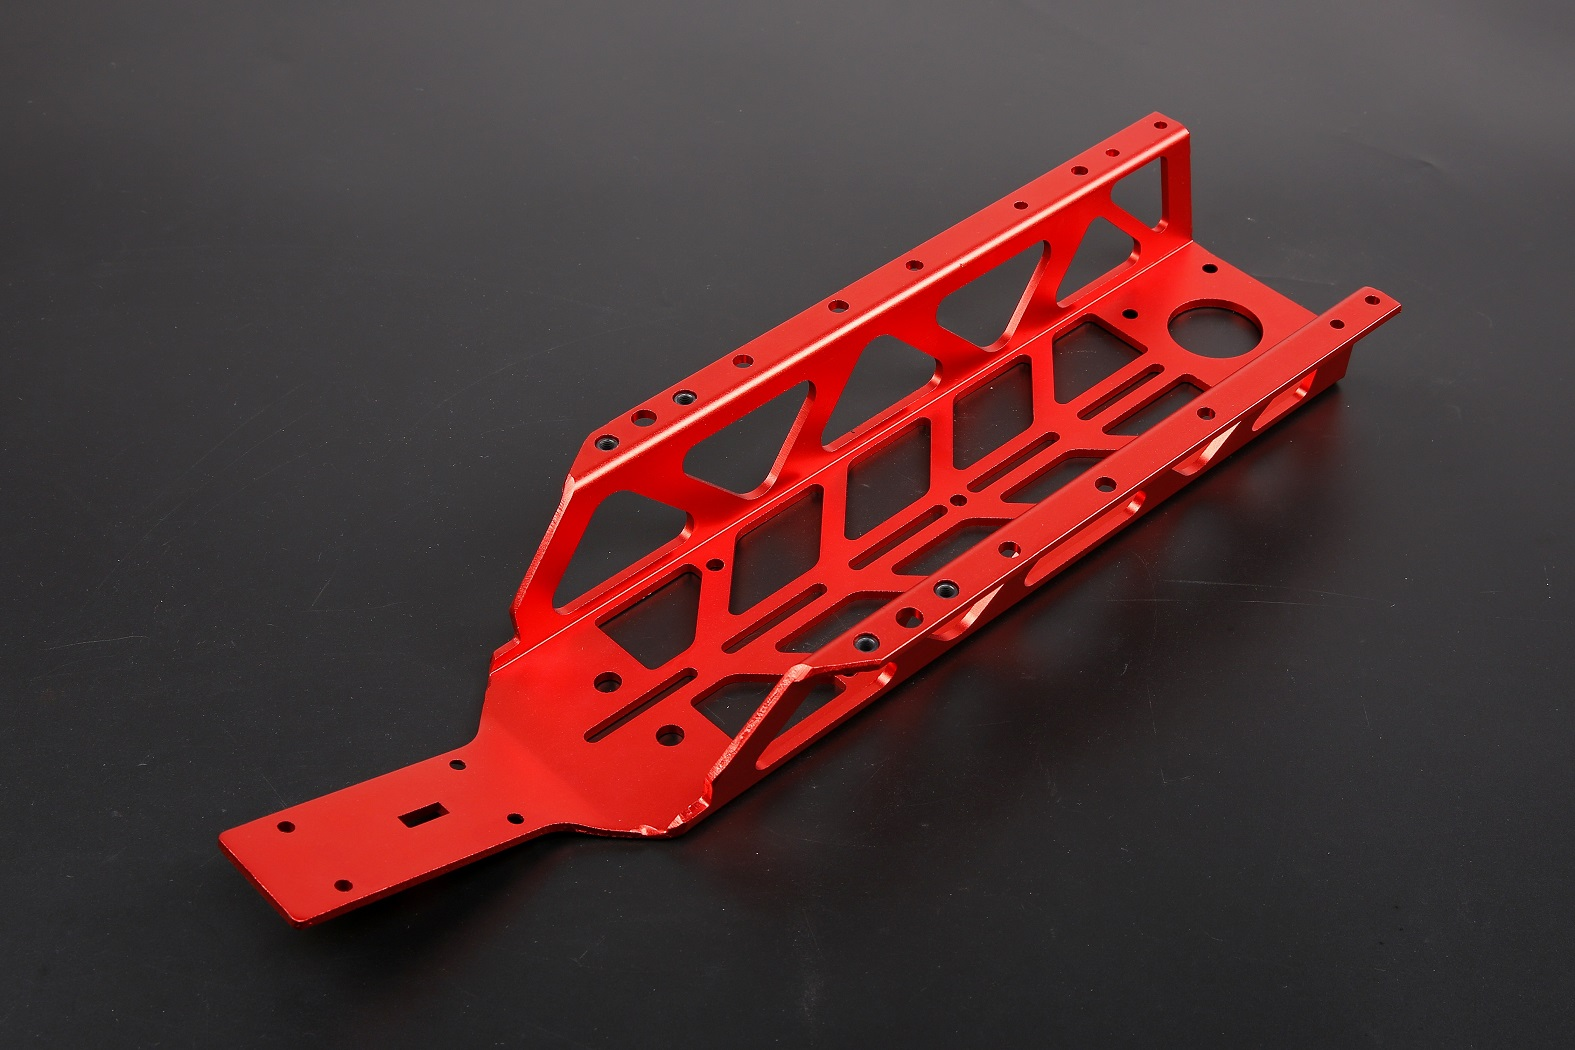 ROVAN 1/5 RC Car Upgrade Parts Baja CNC Steal Light Hollow Chassis Main Frame Chassis For HPI KM Baja 5B SS 5T 5SC baja 5b off road rear tyres for 1 5 gas rc car hpi baja 5b parts rovan km